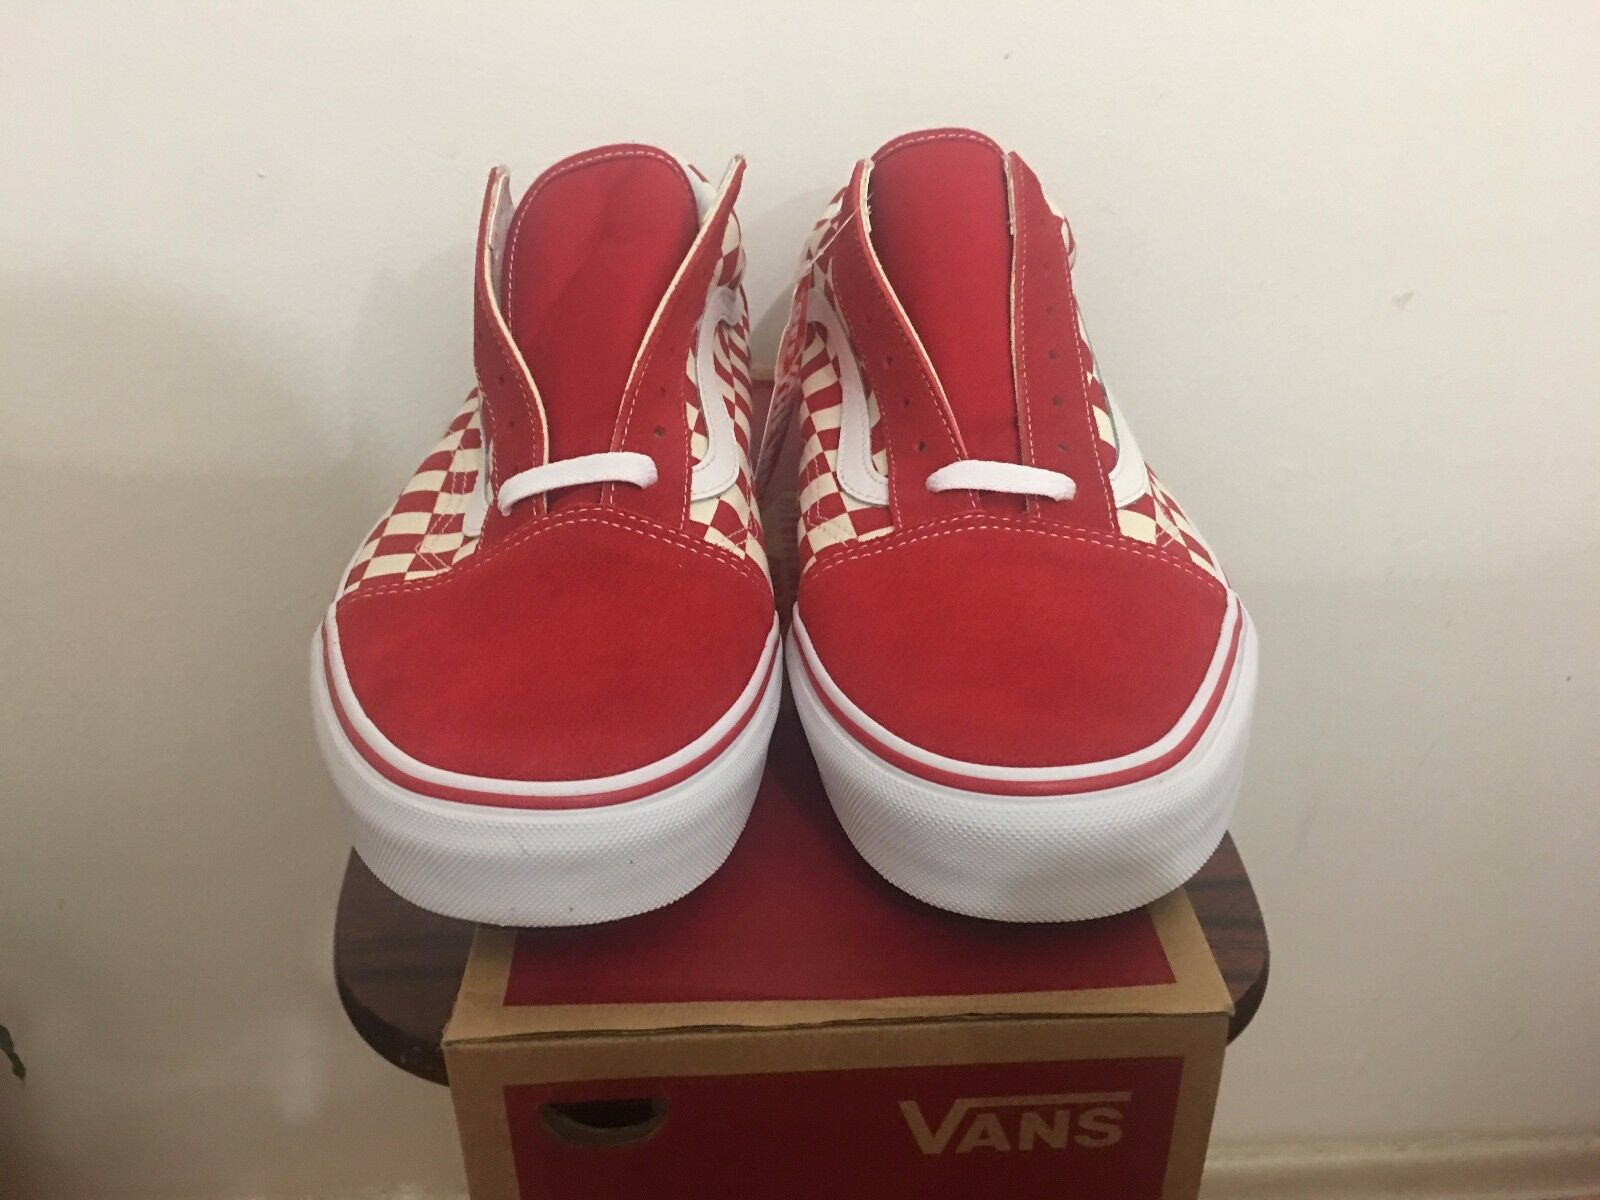 Vans Old Skool Checkerboard rot Checker Primary Primary Primary Supreme All Größes 4-13 Limited c7a839